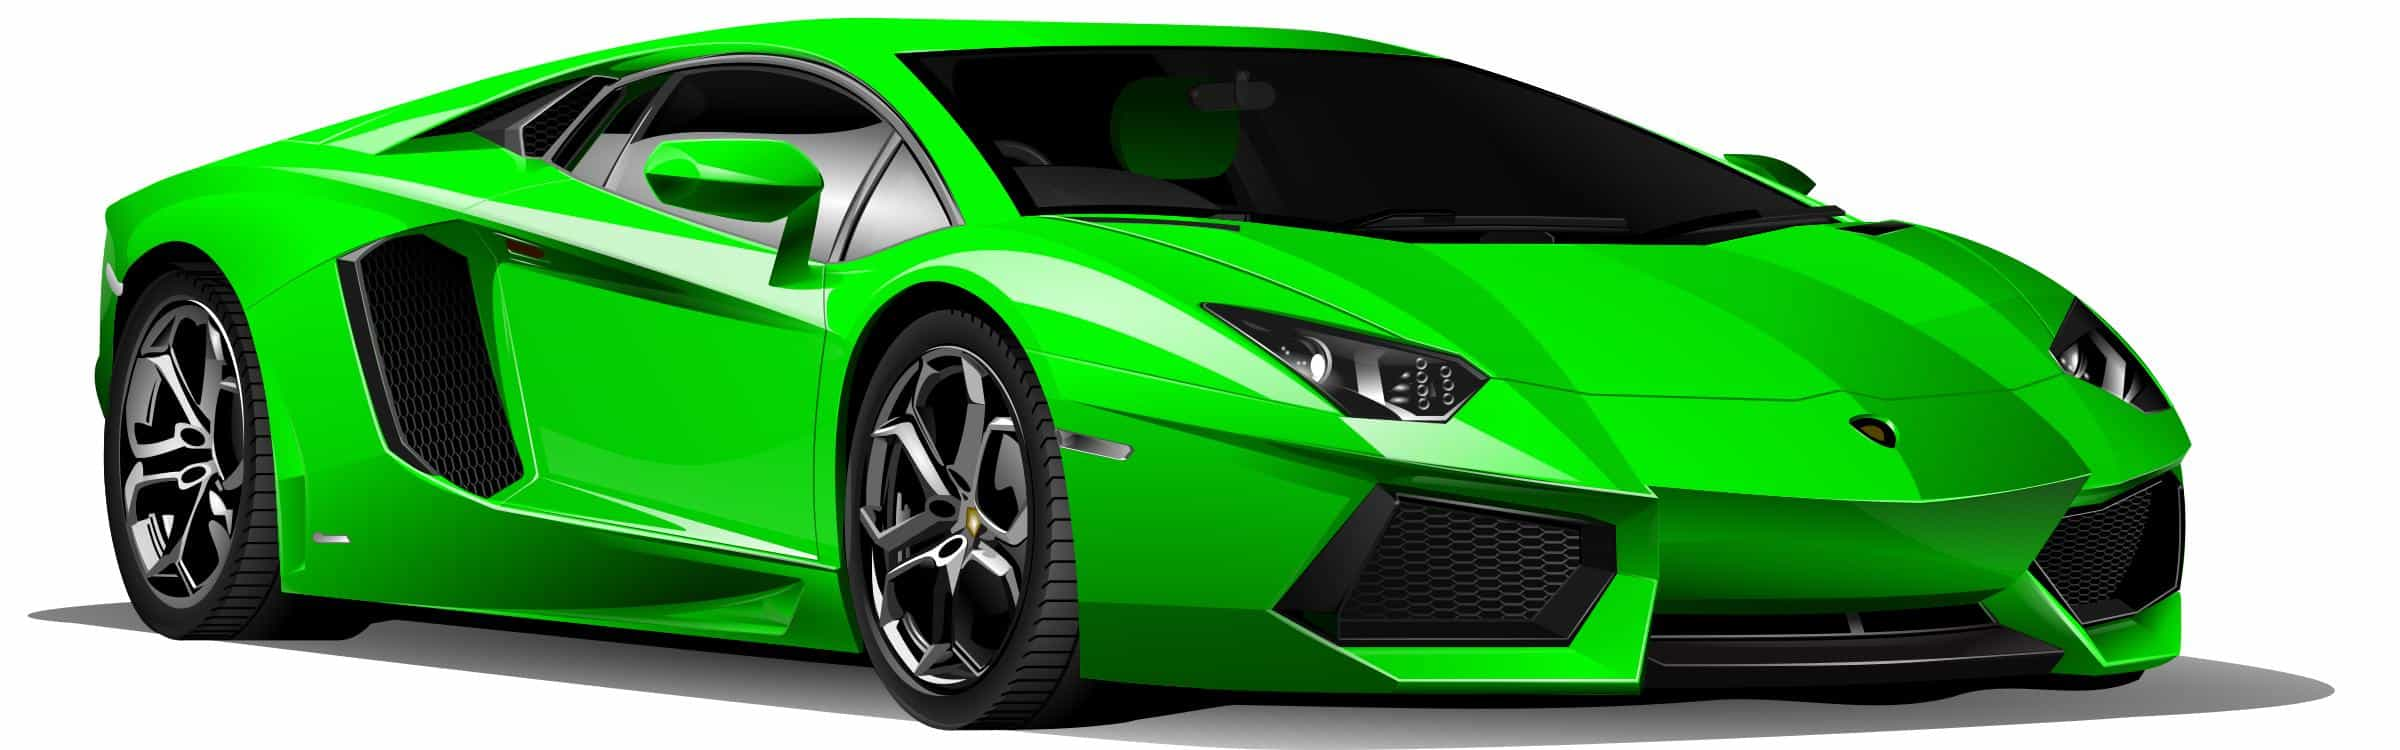 Car green Icons PNG